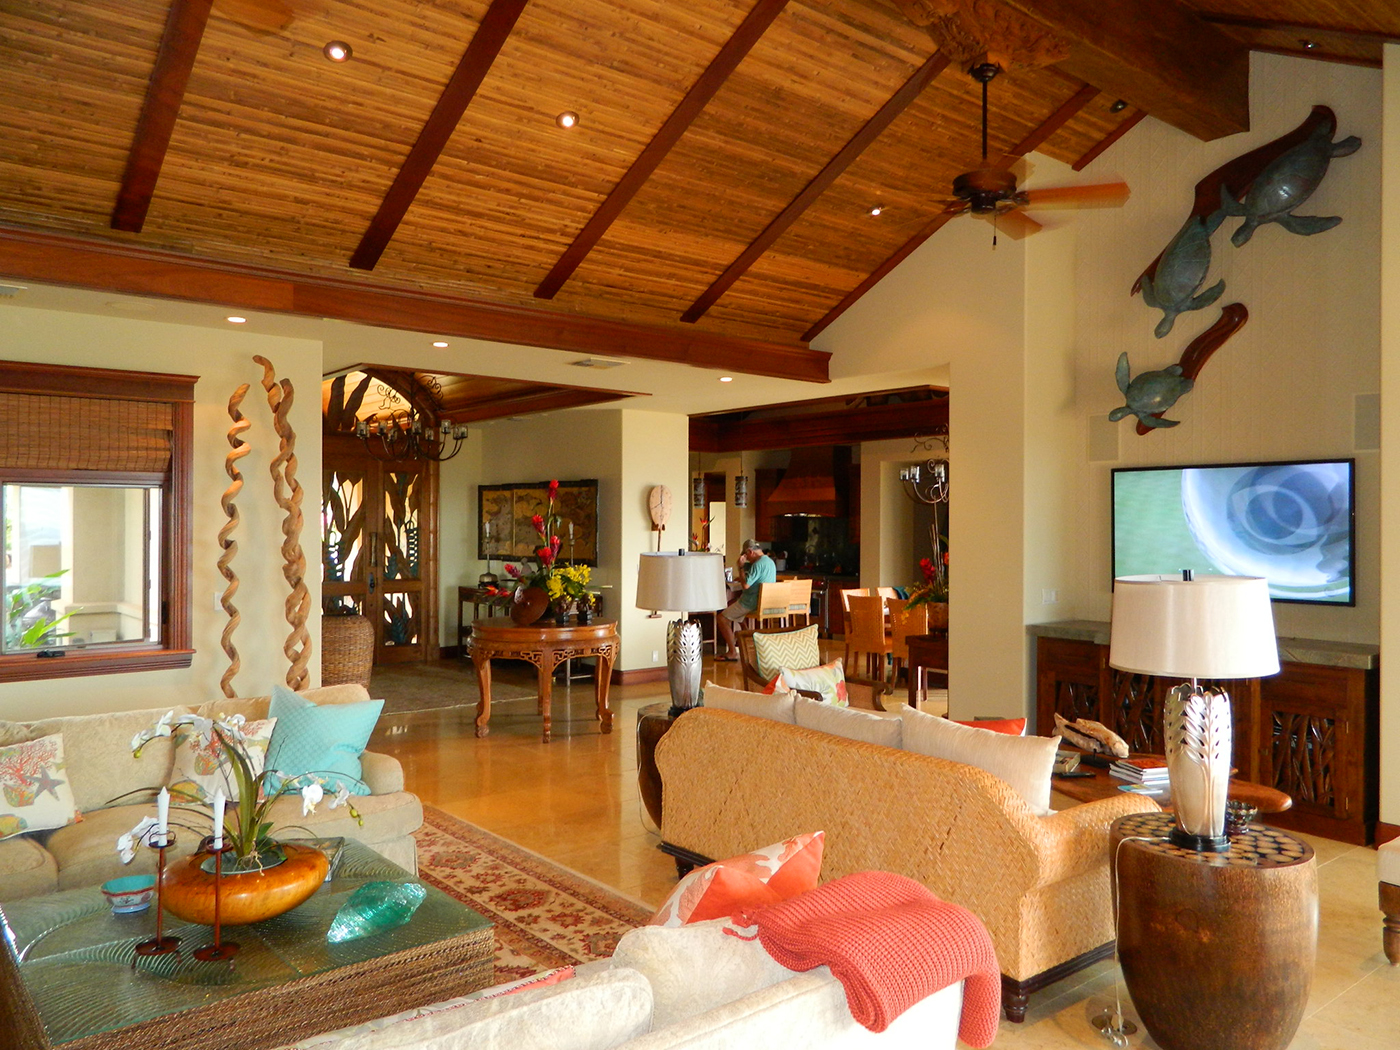 9 MAUI Residence - view from Living Room into Kitchen and Dining.JPG